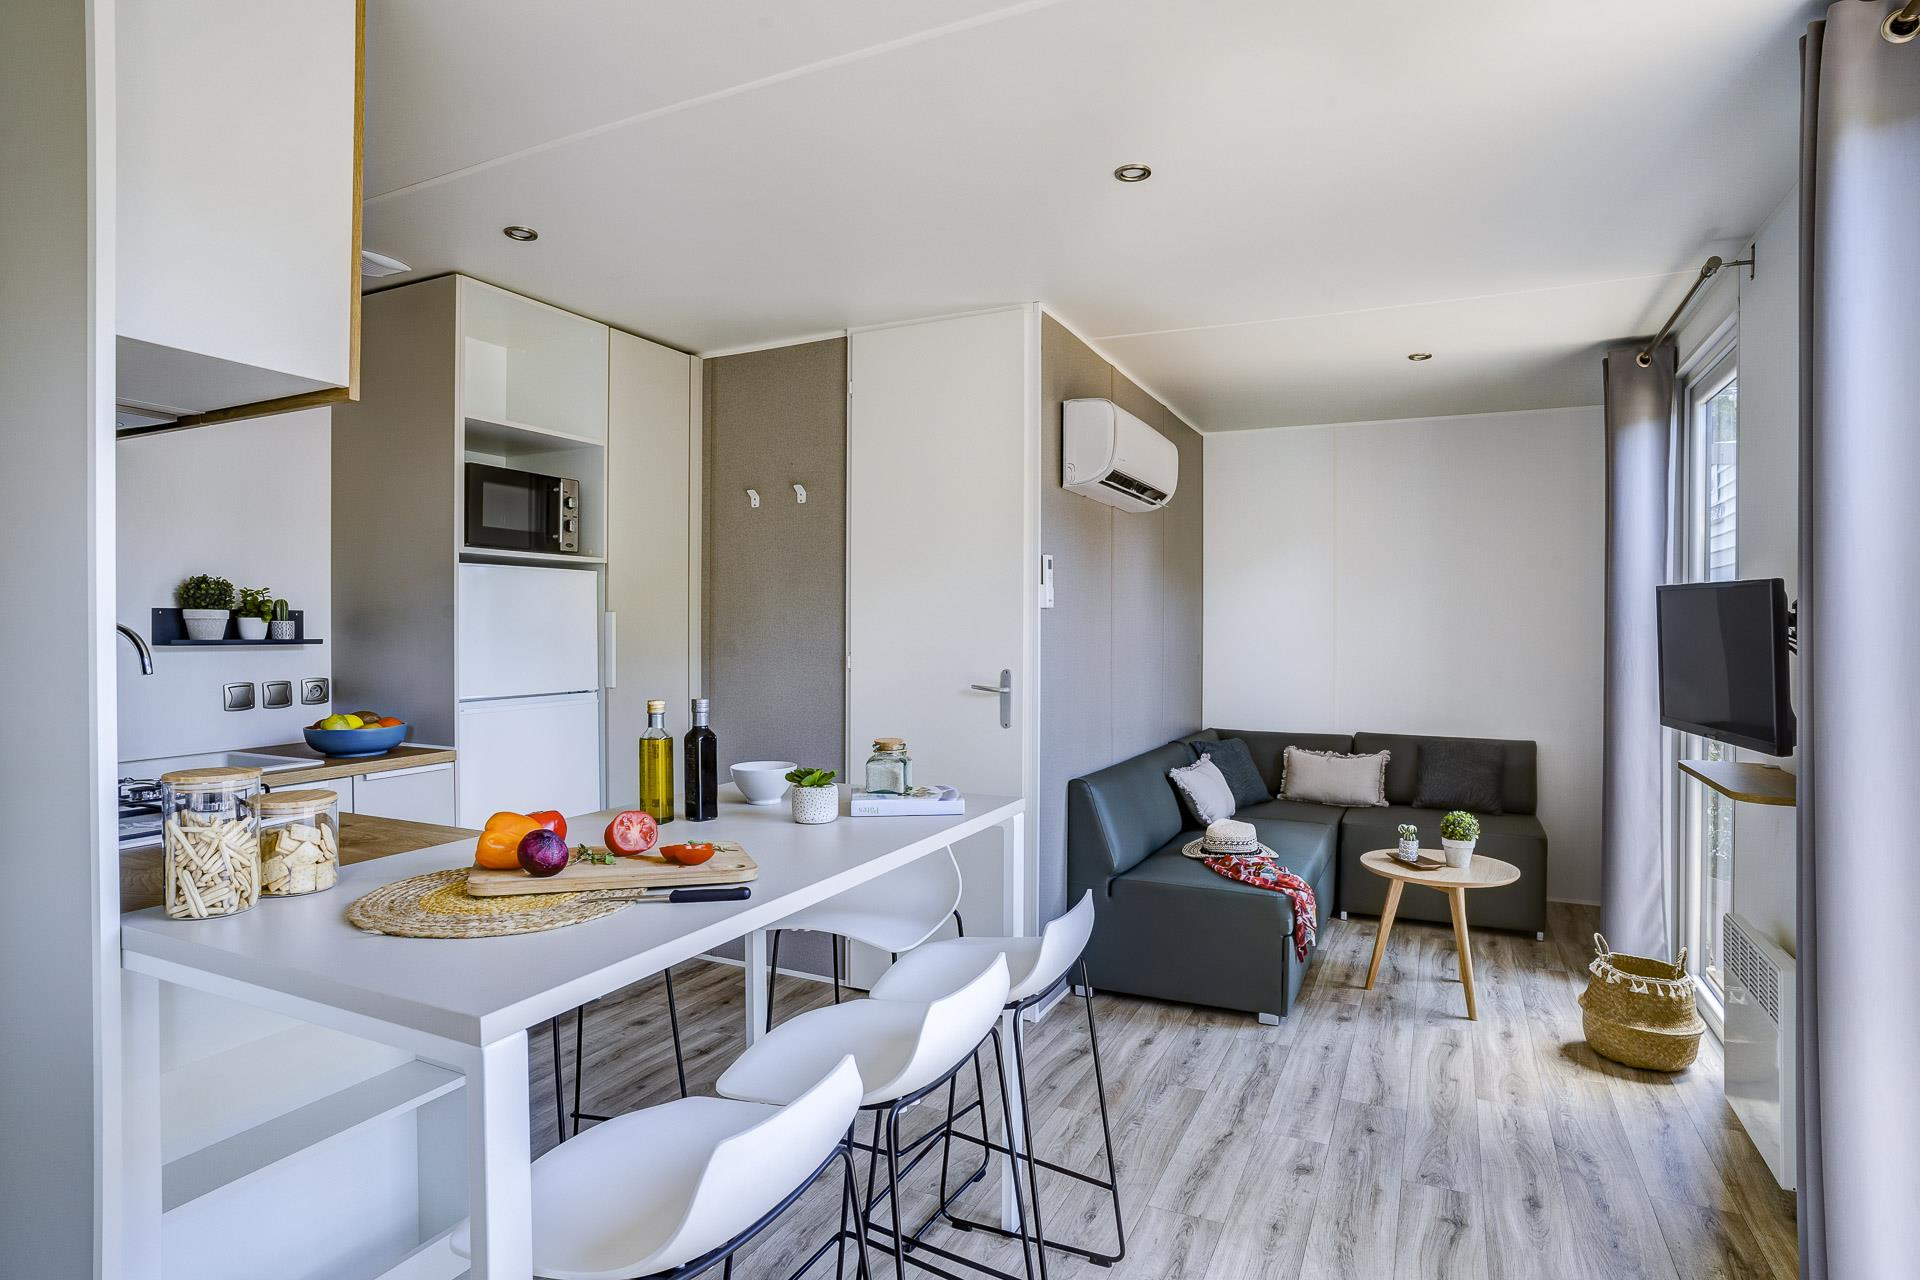 Location - Cottage Friends 5 Chambres **** - Camping Sandaya Blue Bayou